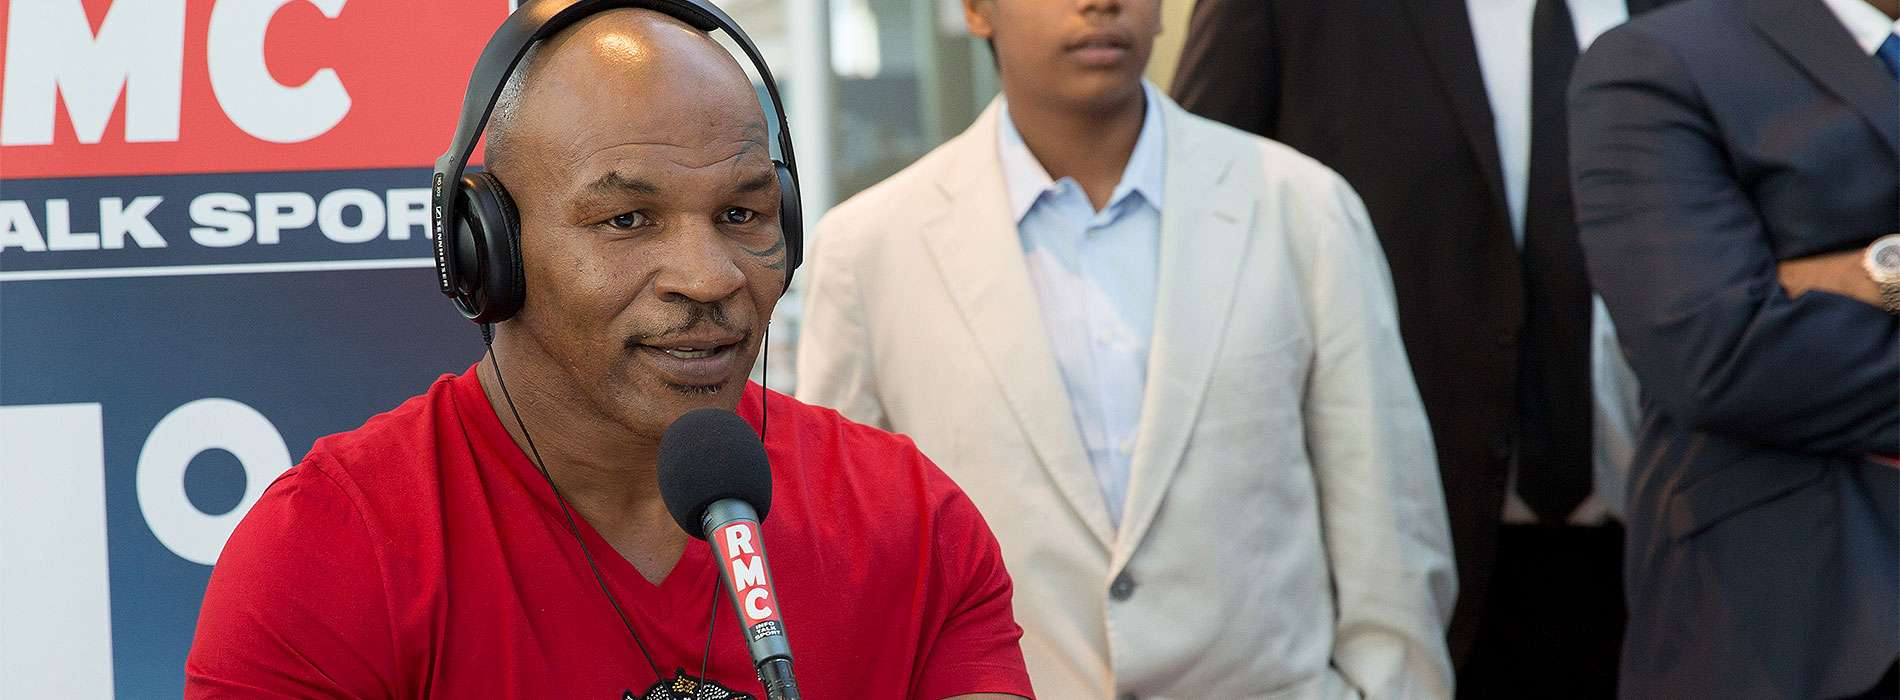 Mike Tyson Foto: Didier Baverel/Getty Images